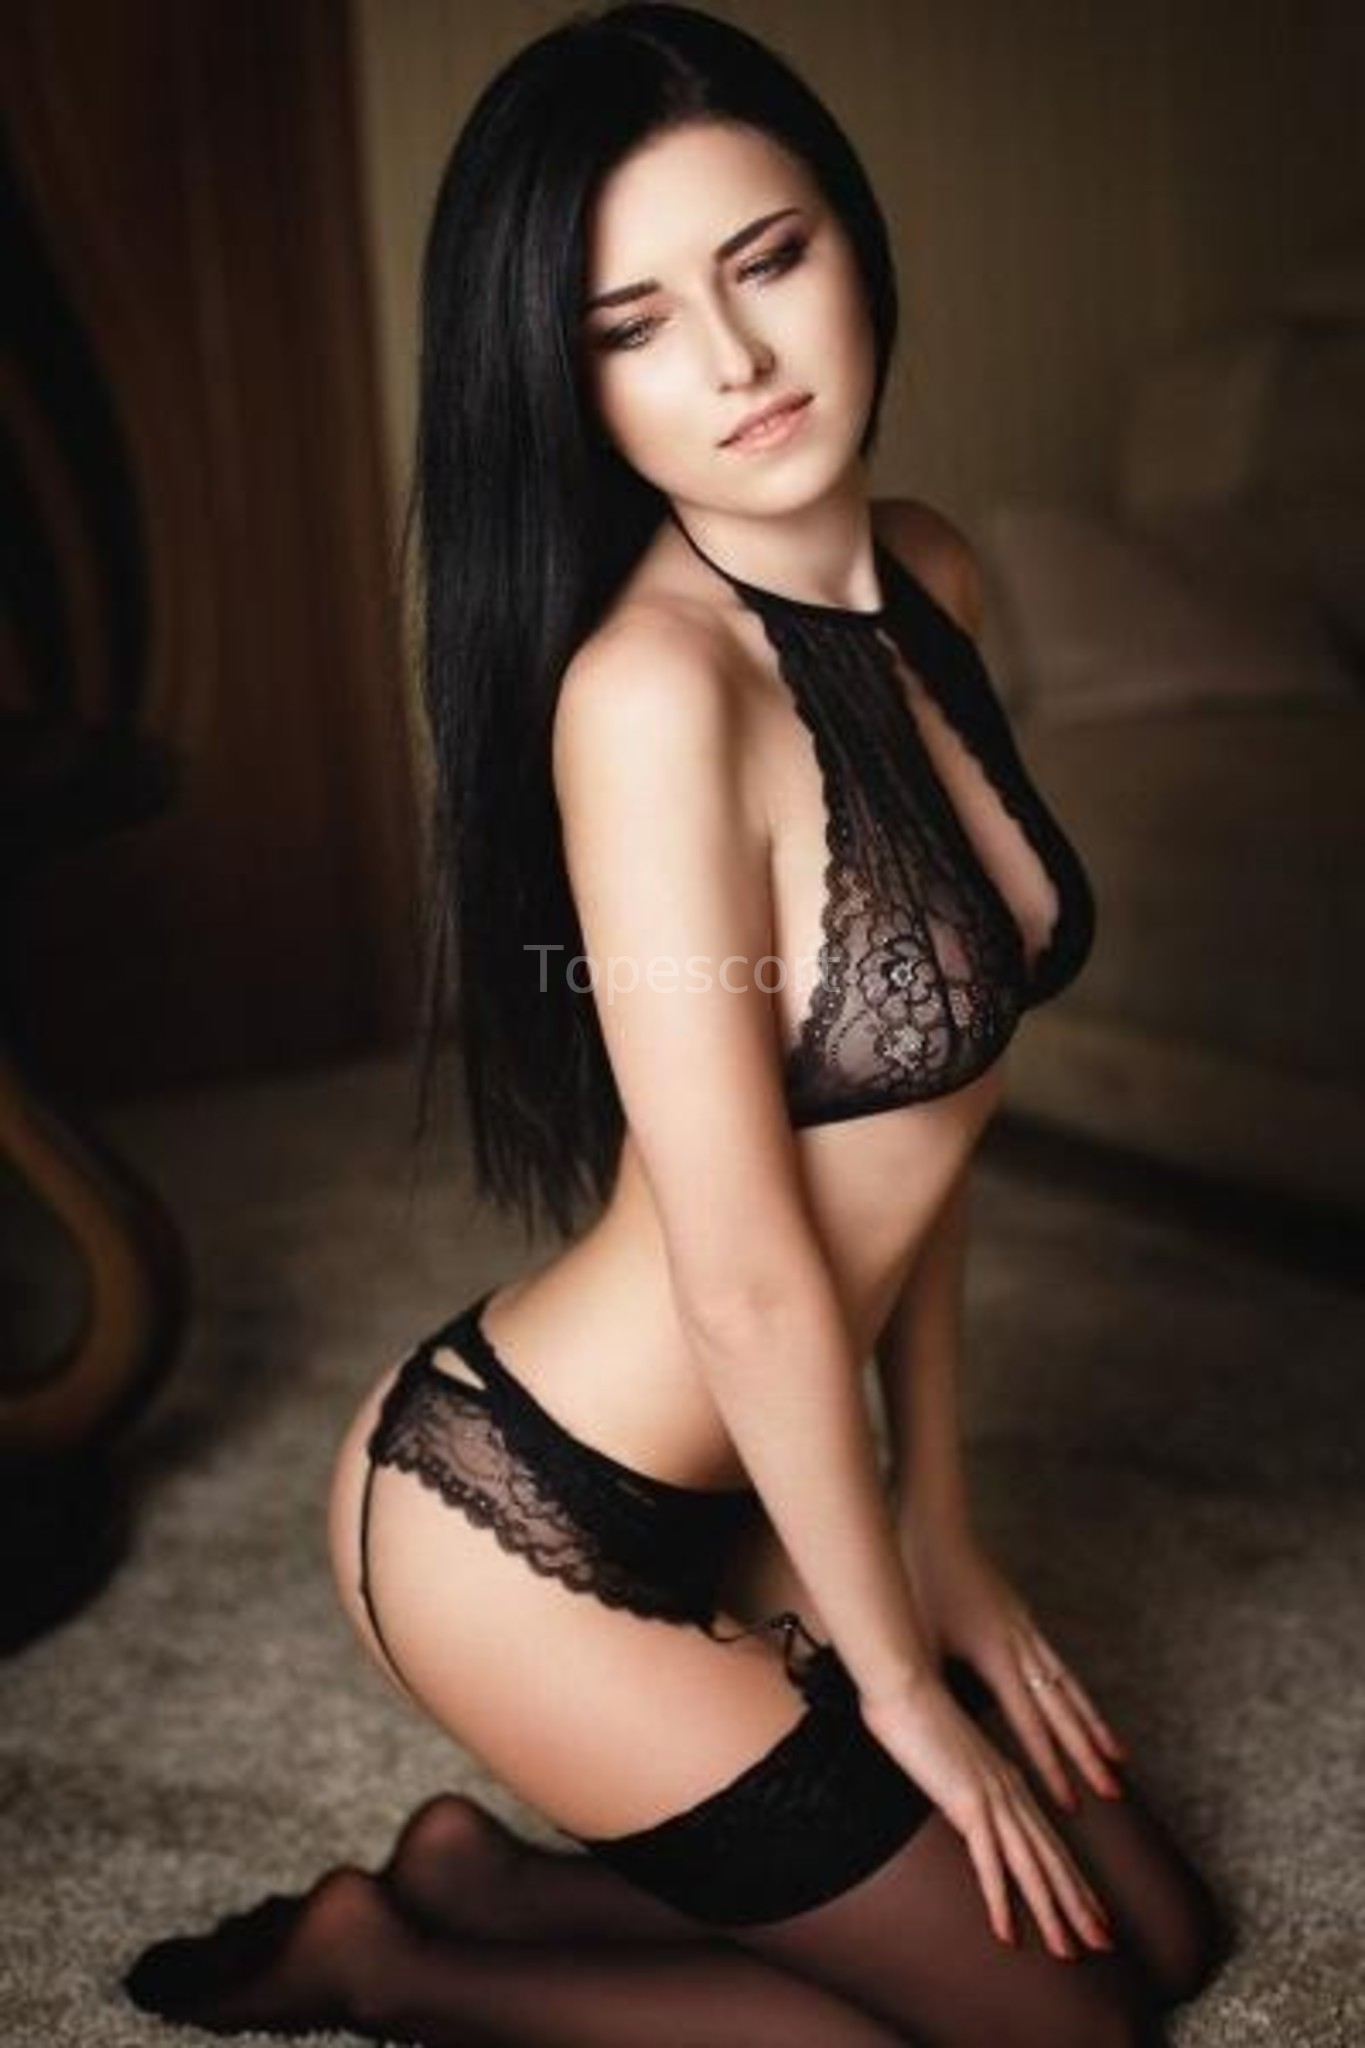 Sexy escort emma book me now for a hot session